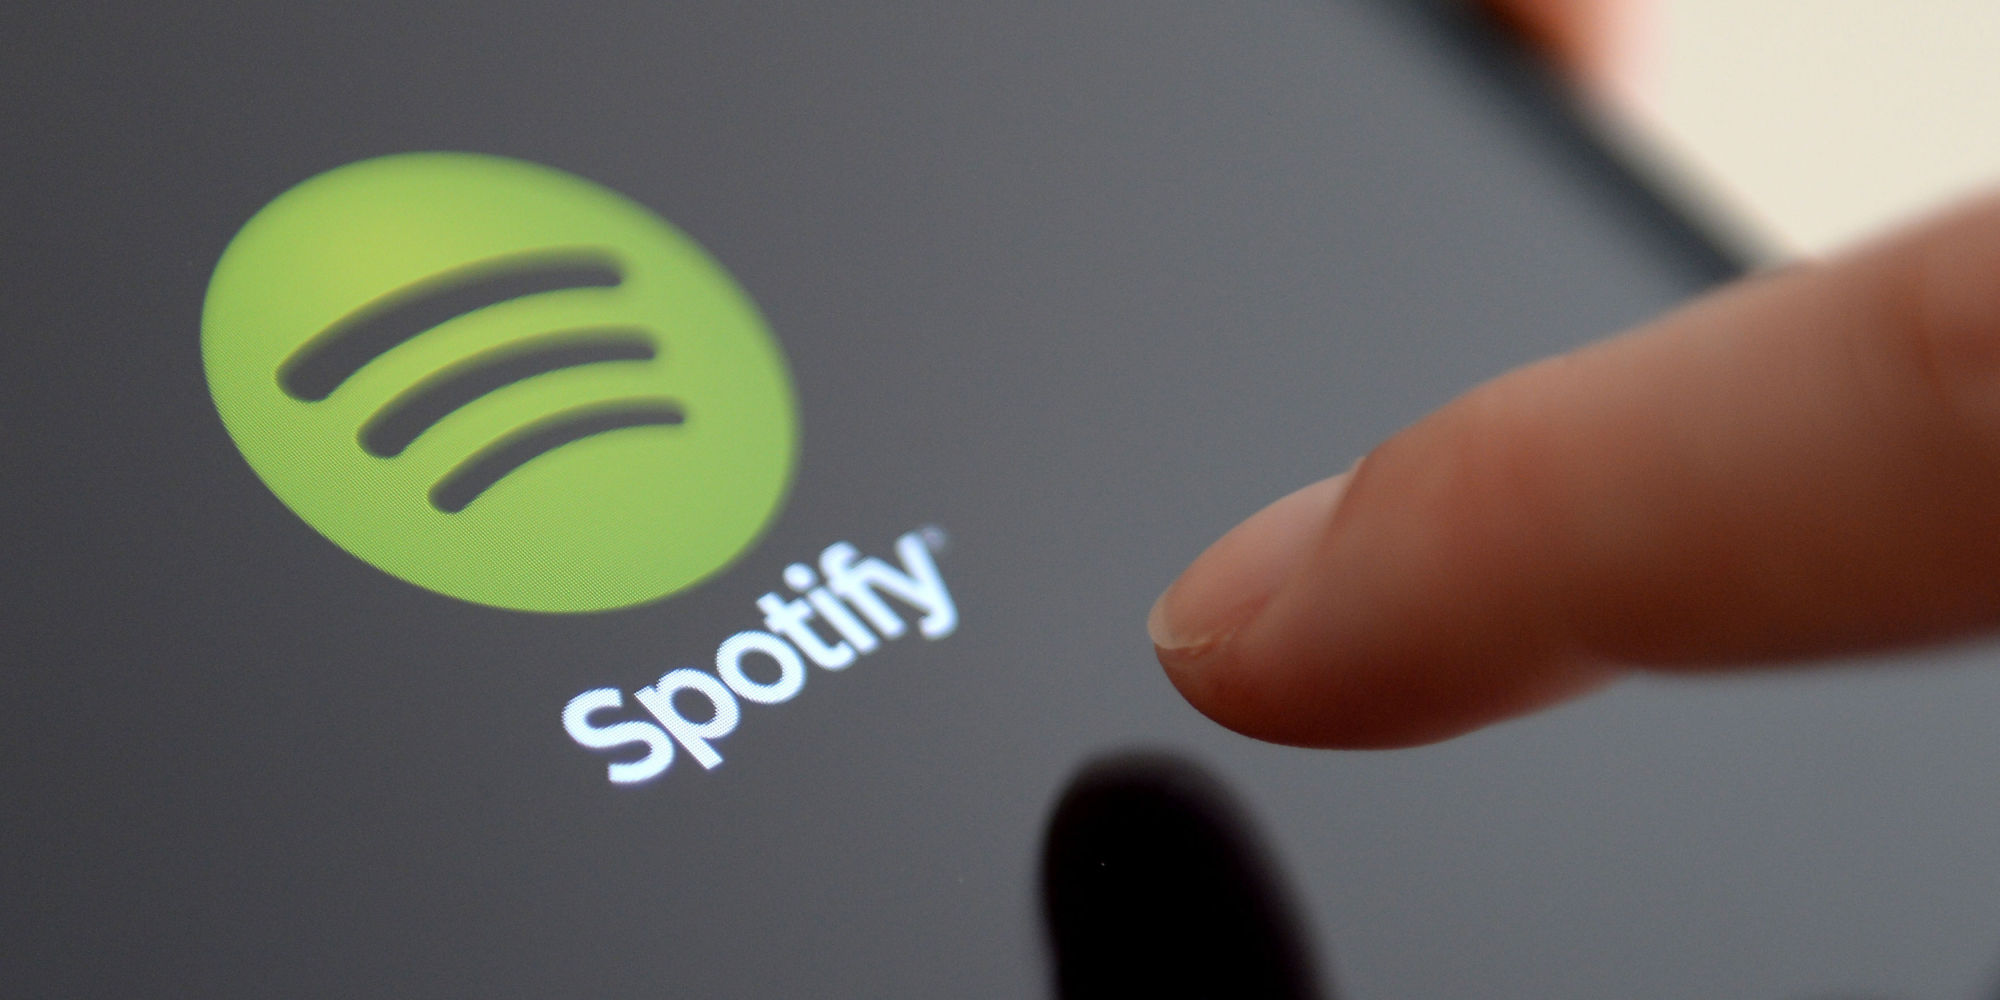 Spotify has again come under fire and has become a part of media scrutiny. Account details of hundreds of Spotify users have been leaked and put on text sharing website Pastebin.